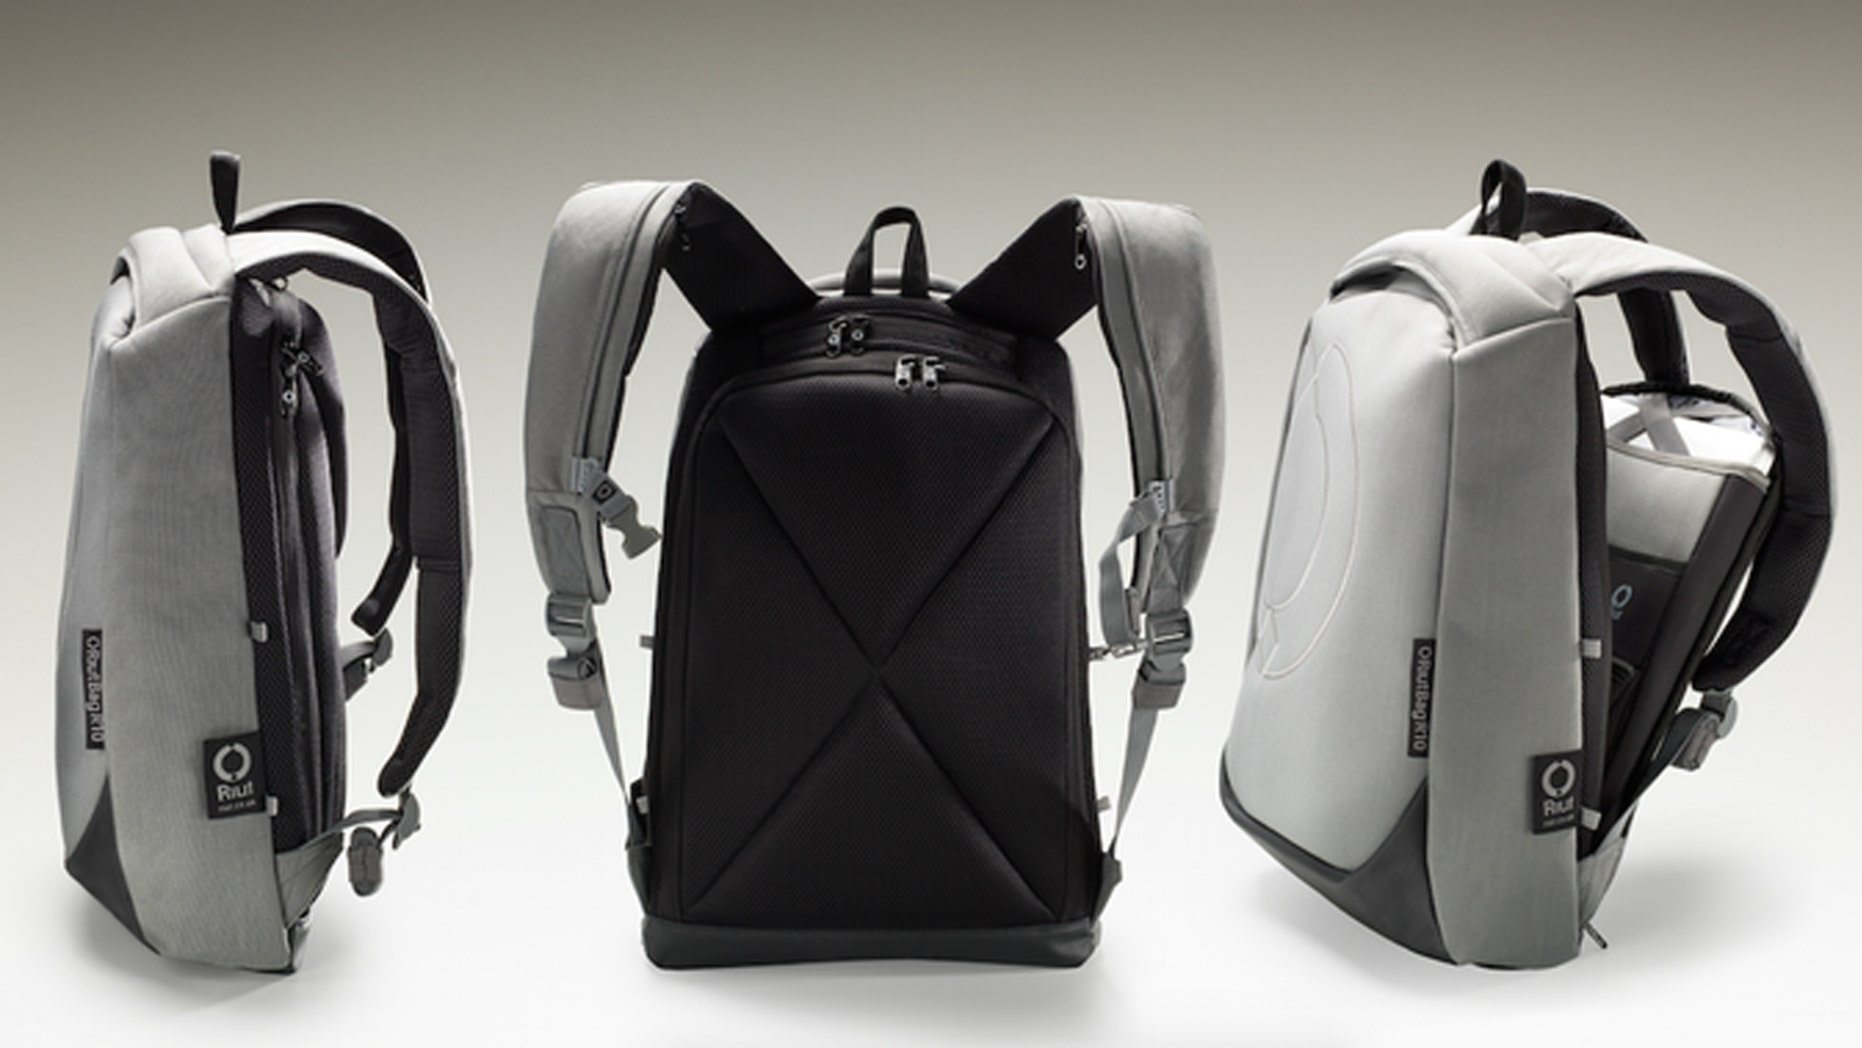 The bag's design features zippers on the interior.